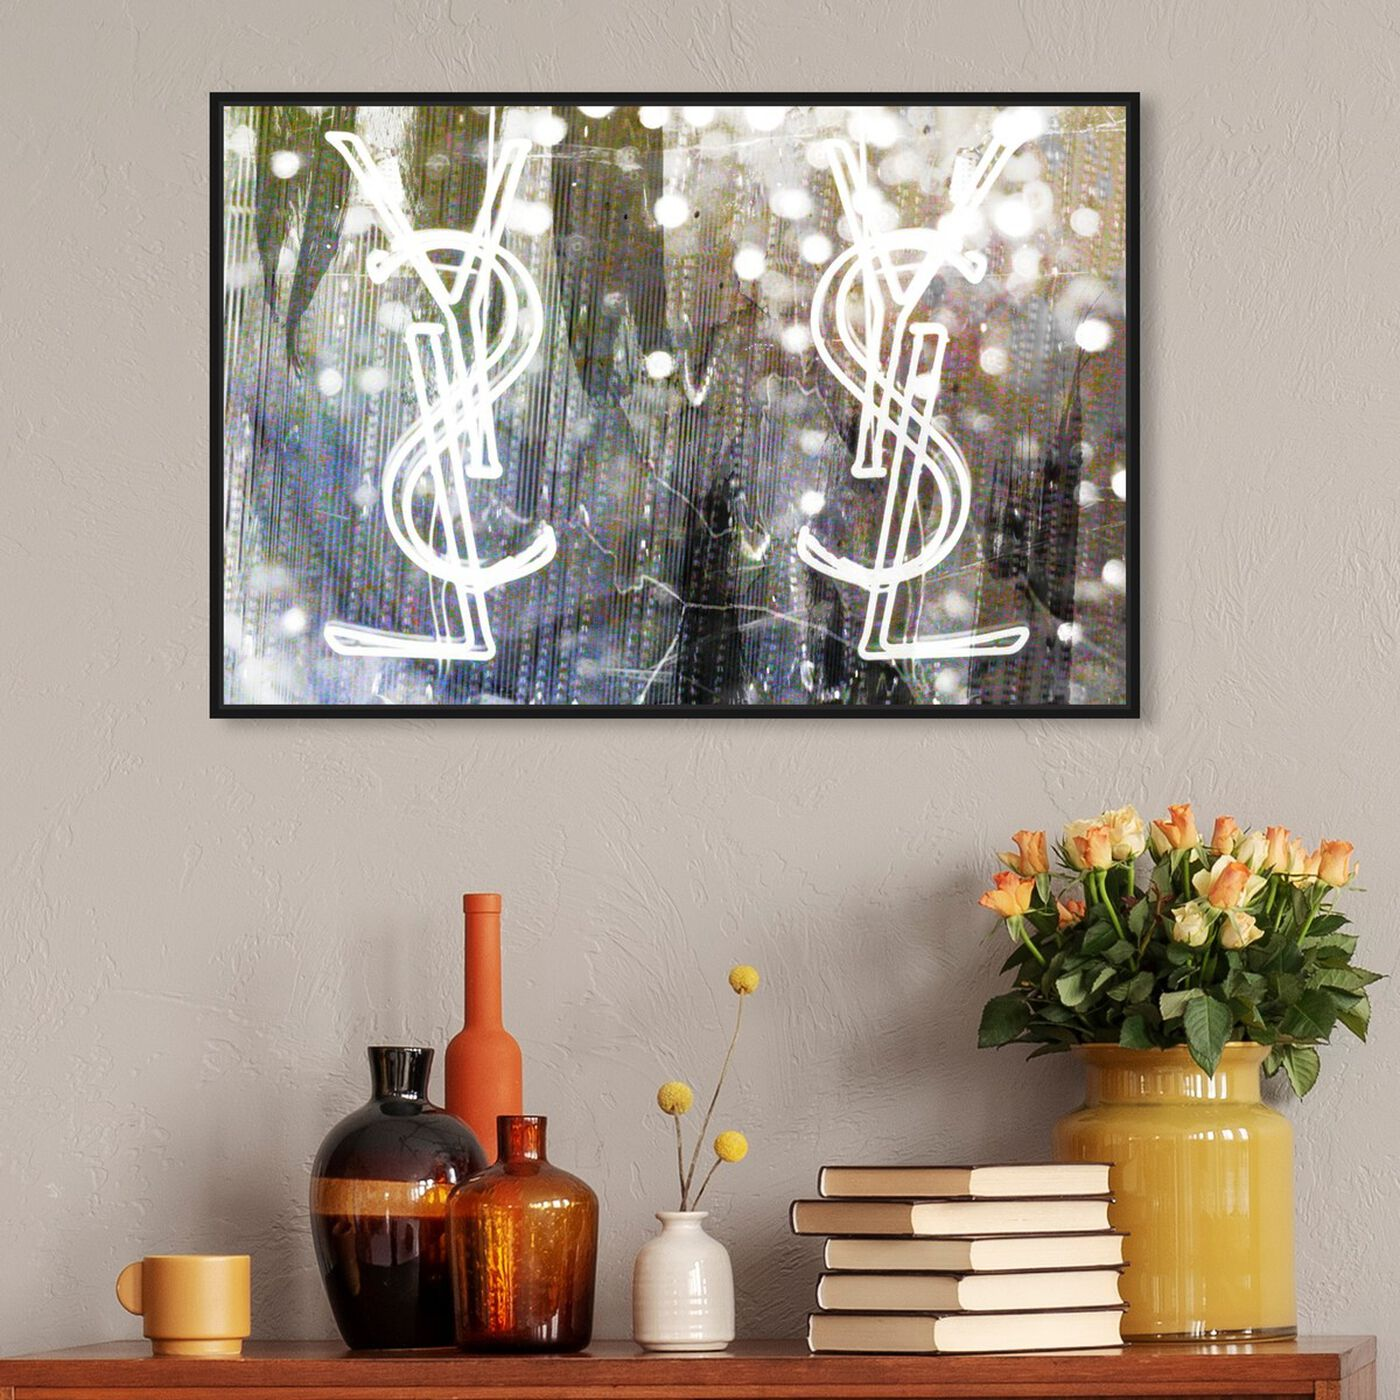 Hanging view of Call Your Girlfriend Snow featuring fashion and glam and fashion art.